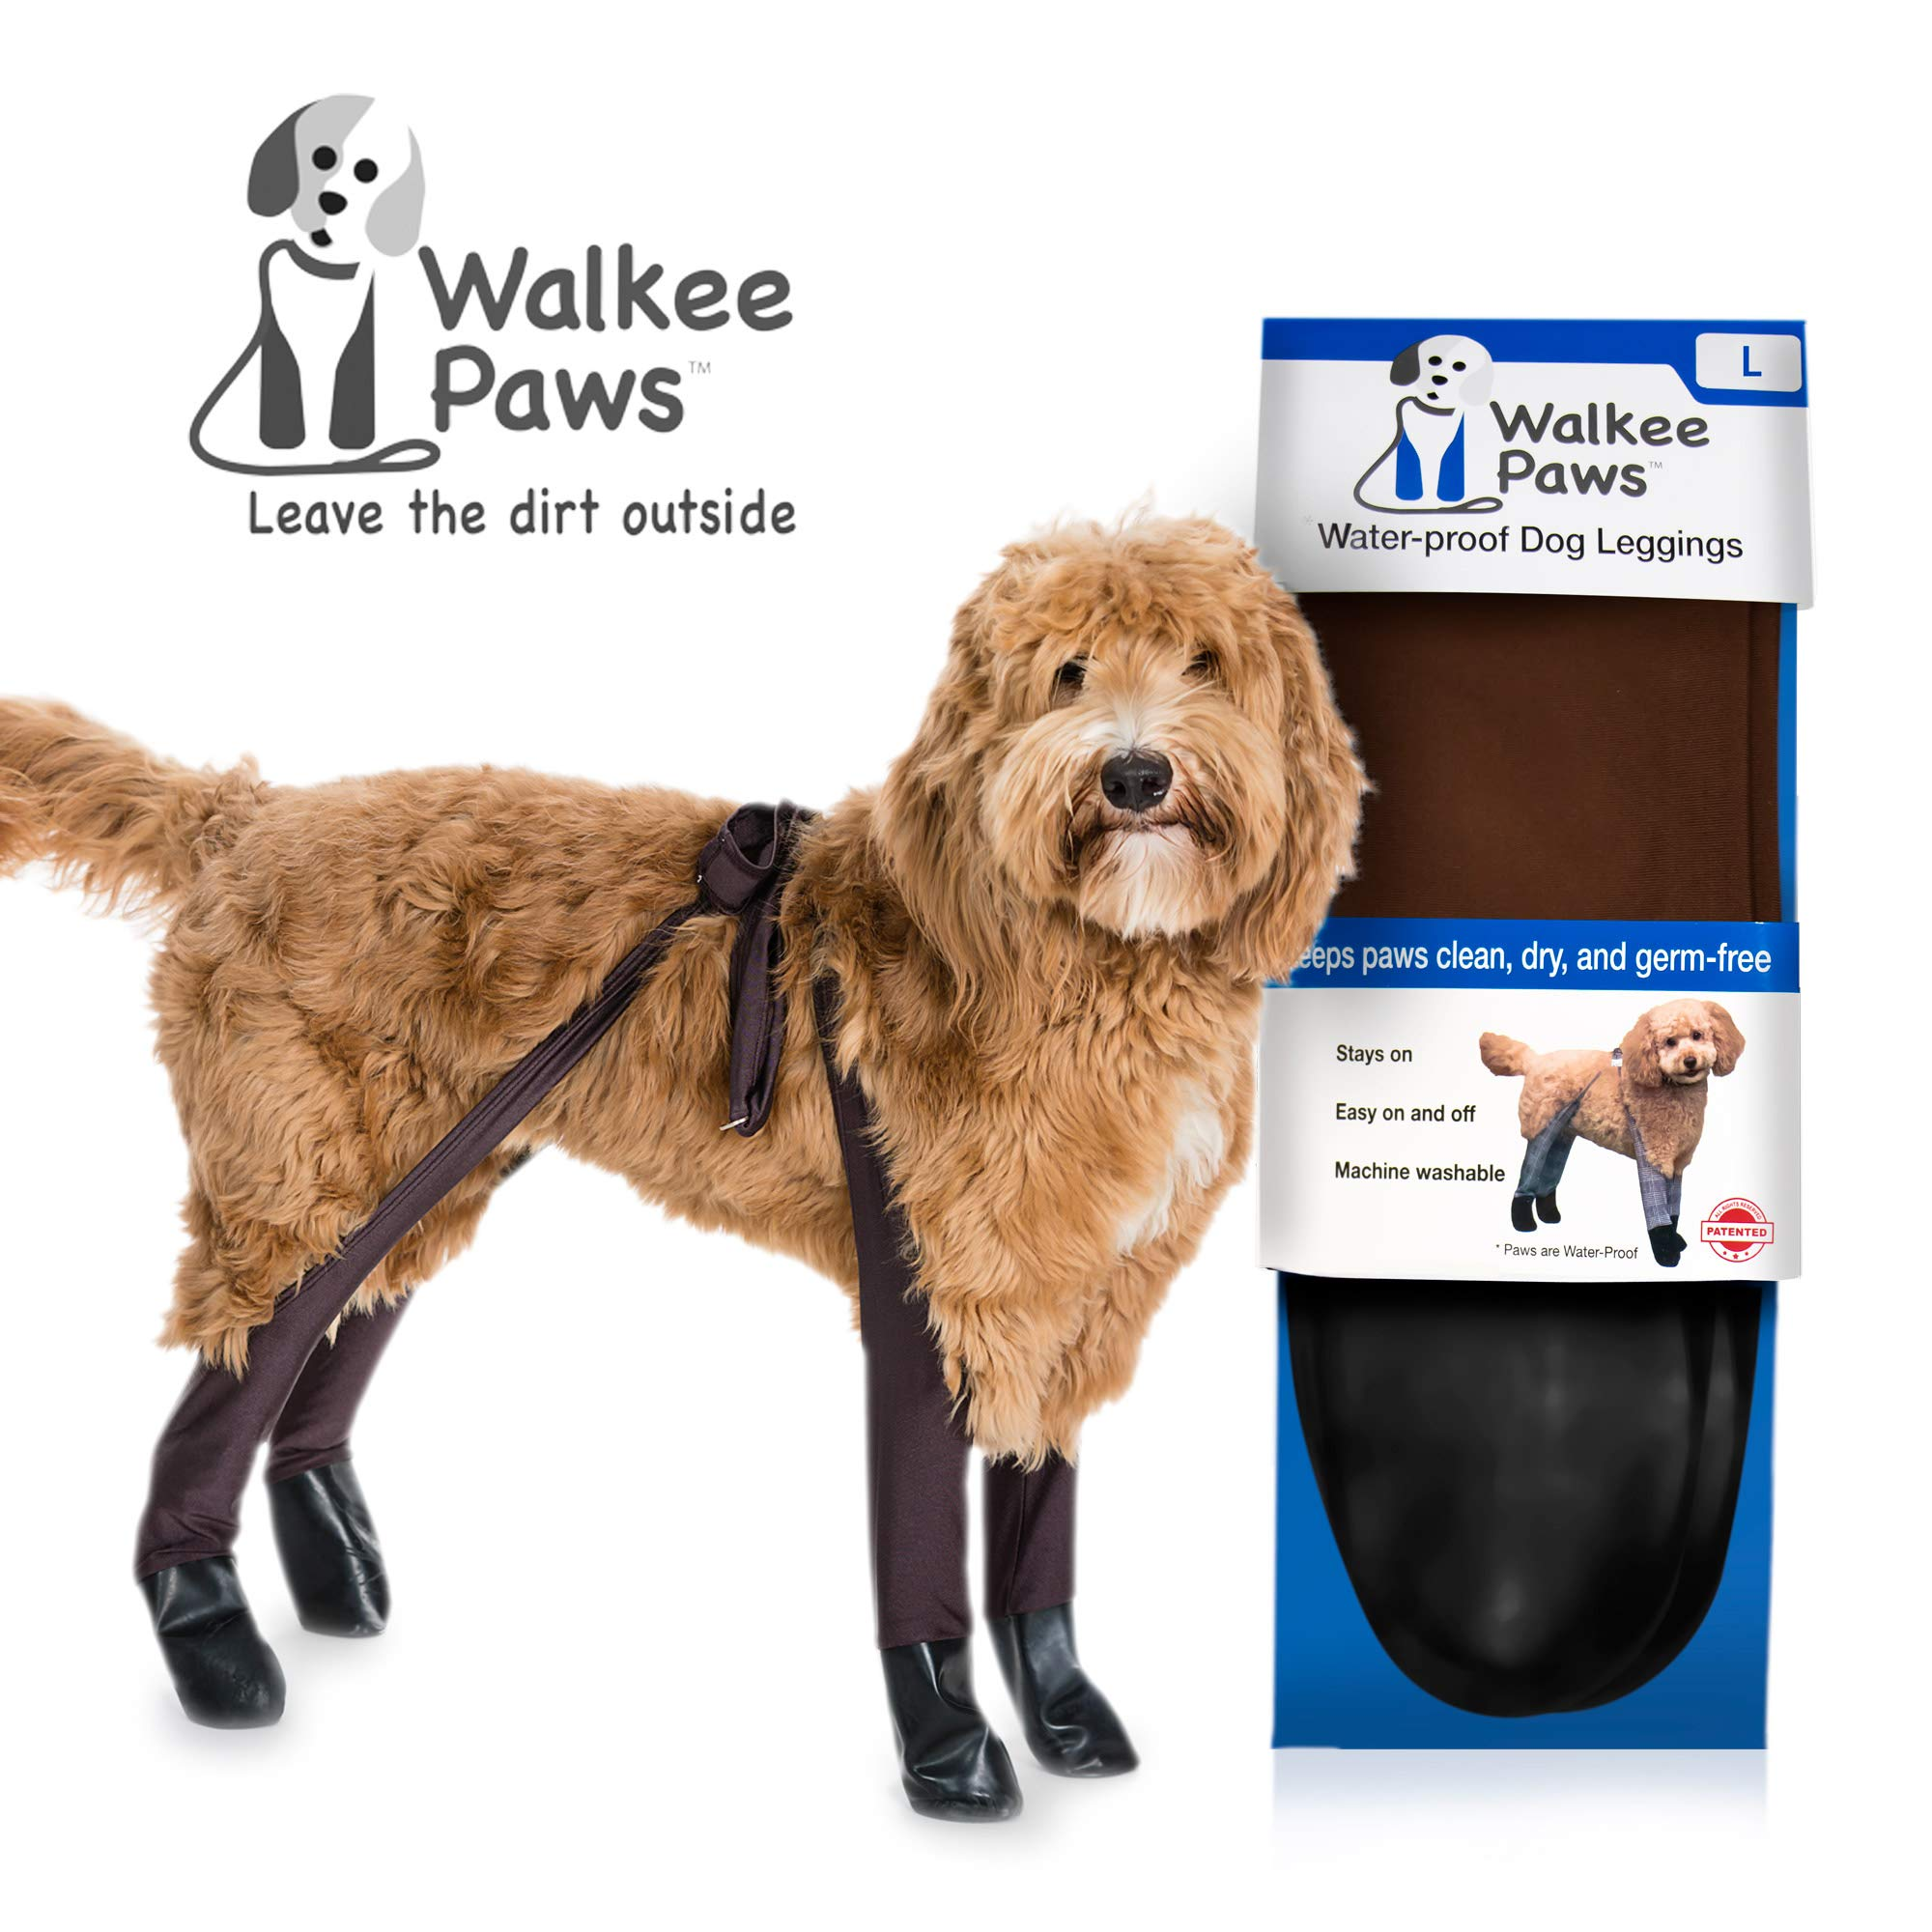 Walkee Paws Waterproof Dog Leggings - Keep Your Dog's Feet Clean and Dry Without The Hassle of Boots - Cocoa Color (Large) by Walkee Paws